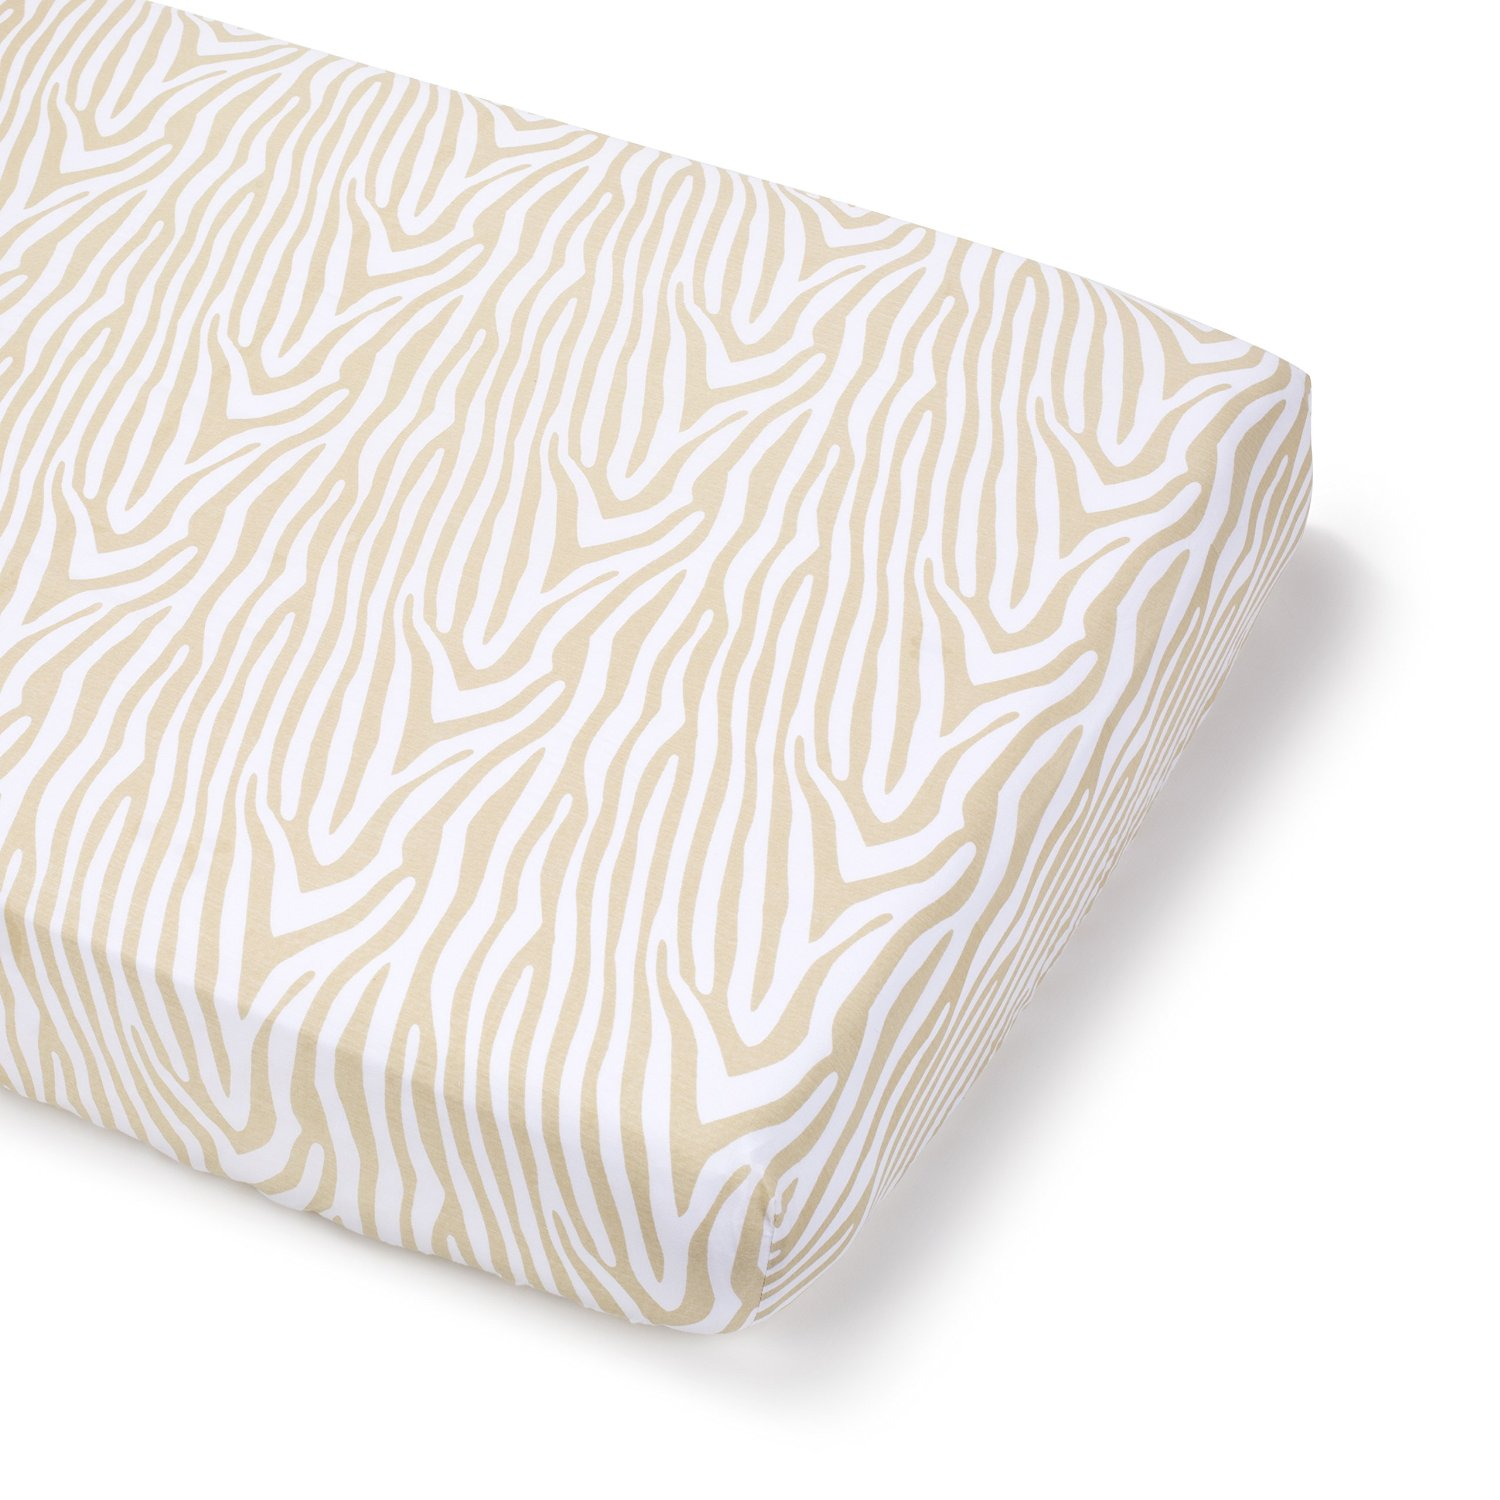 Summer Infant Full Size Crib Sheet - Beige Zebra